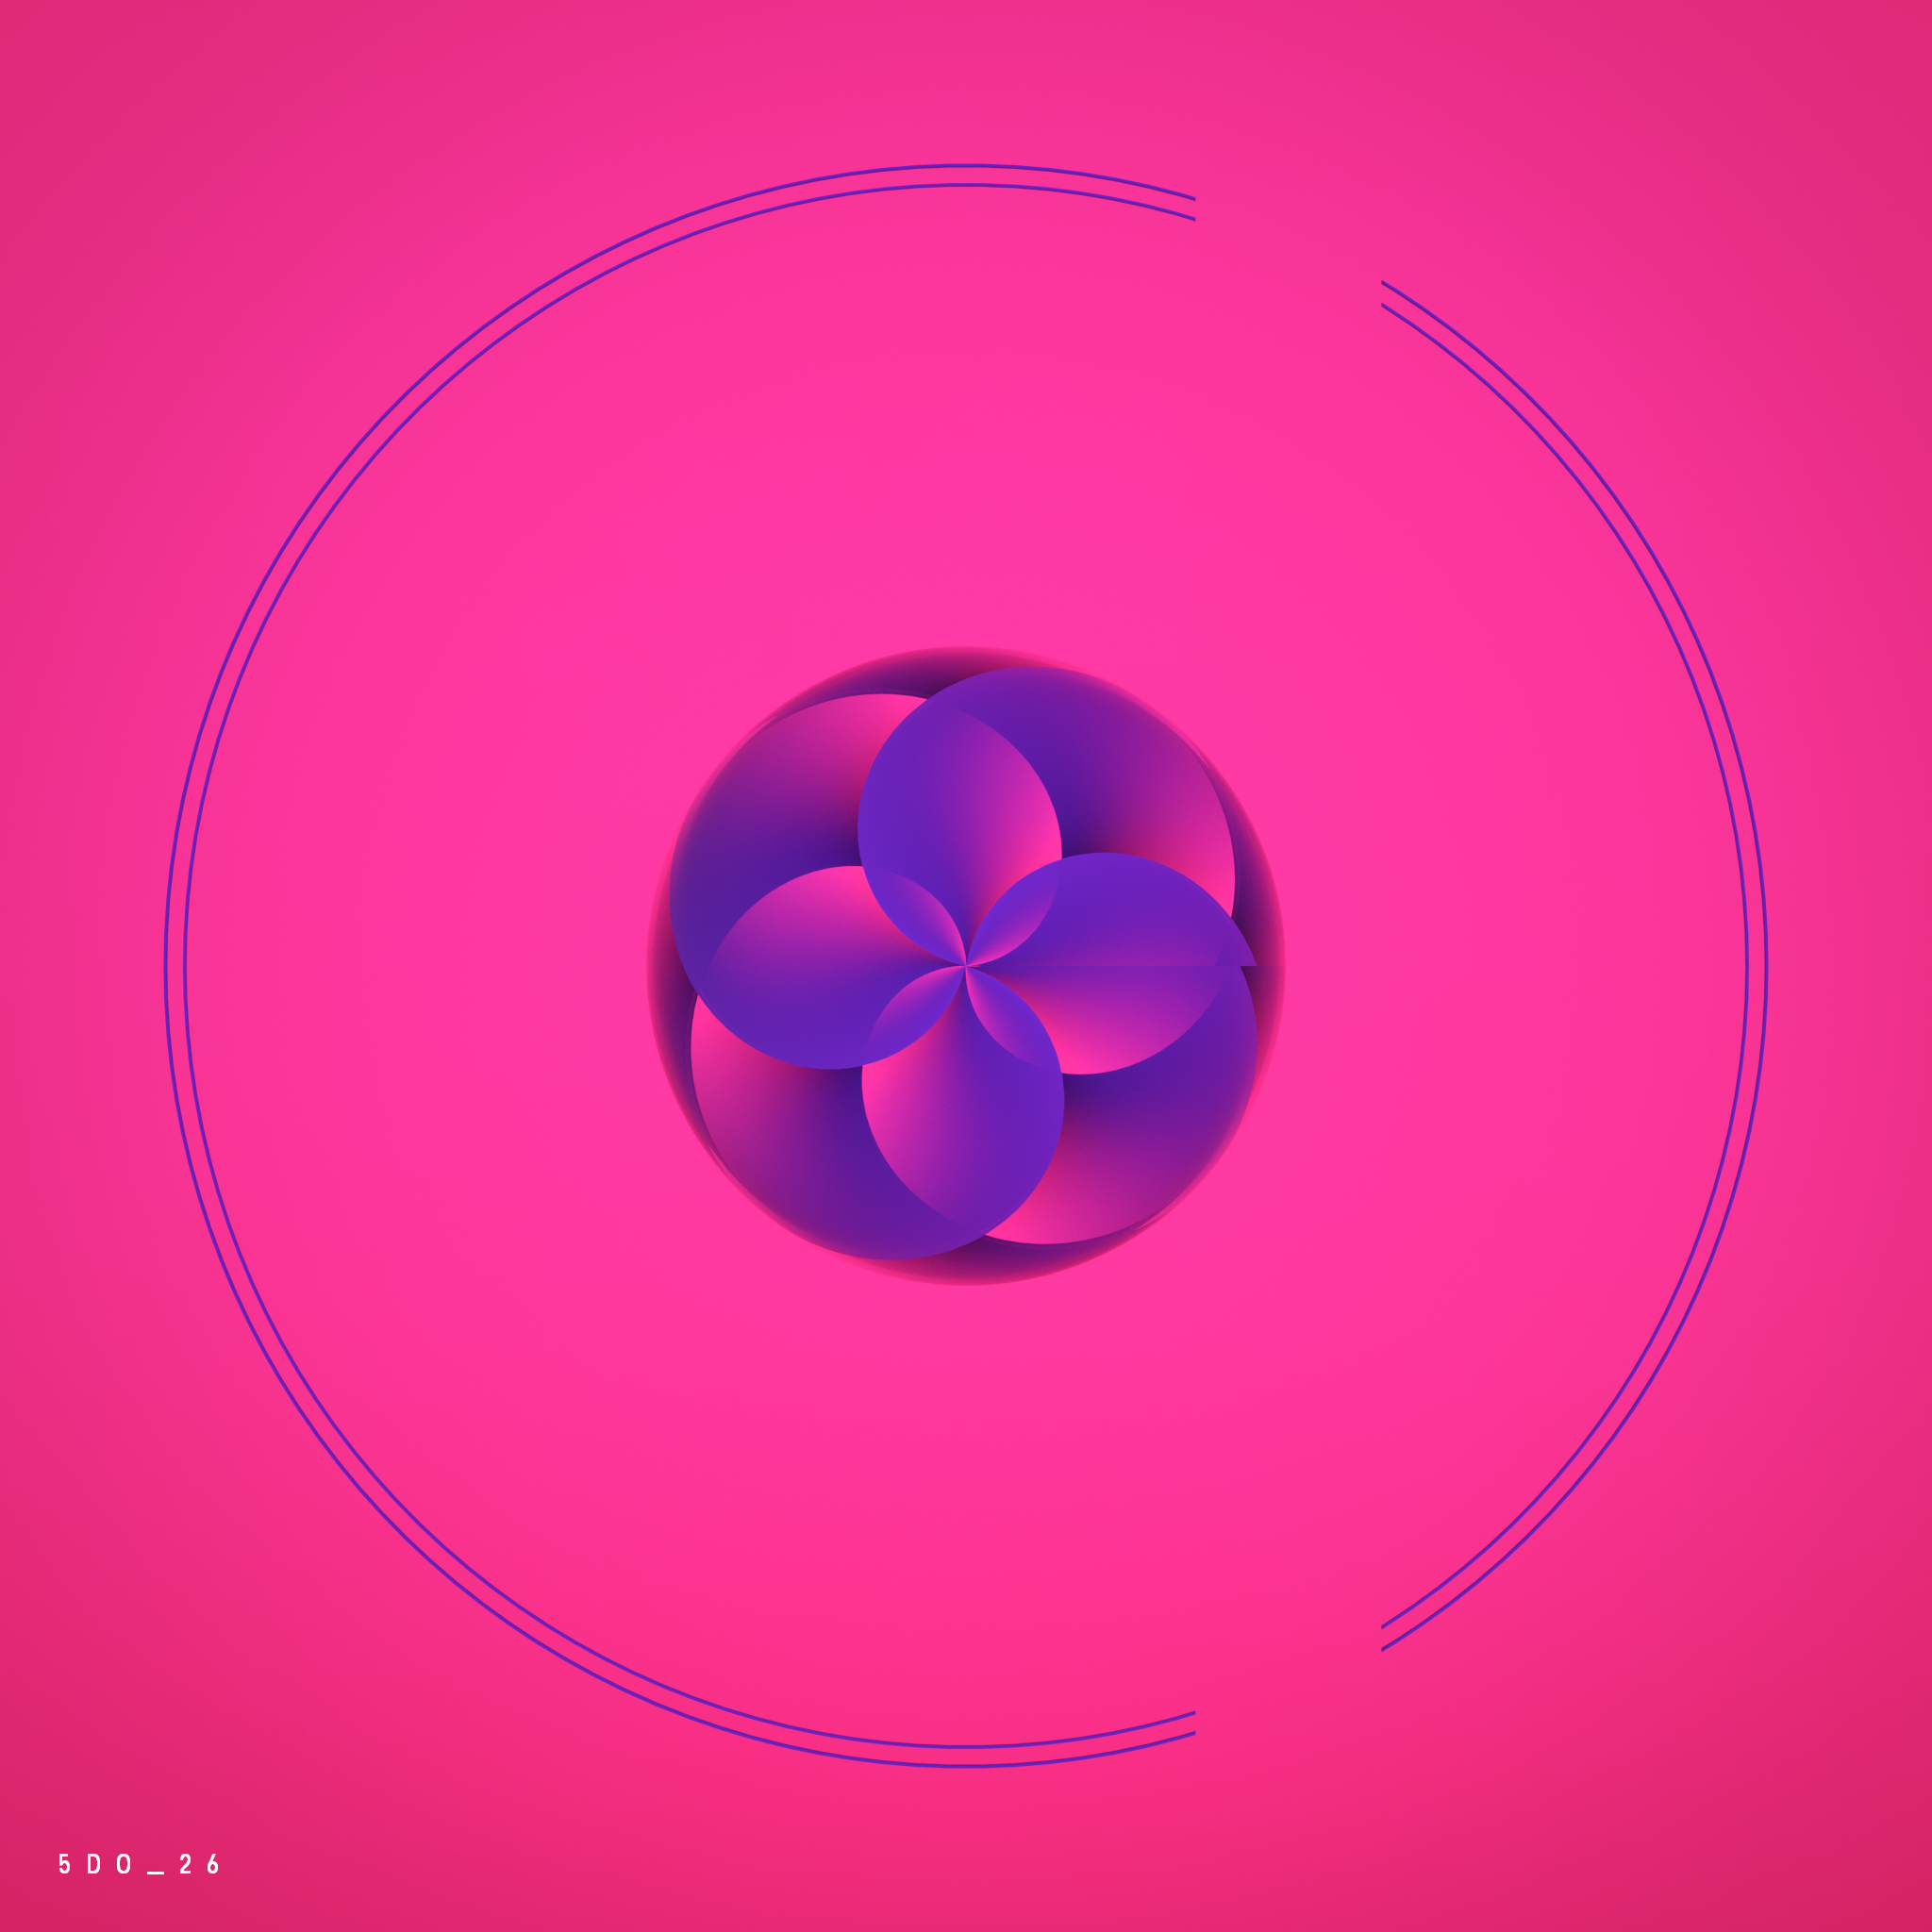 5DO_1_Sphere_v01.png